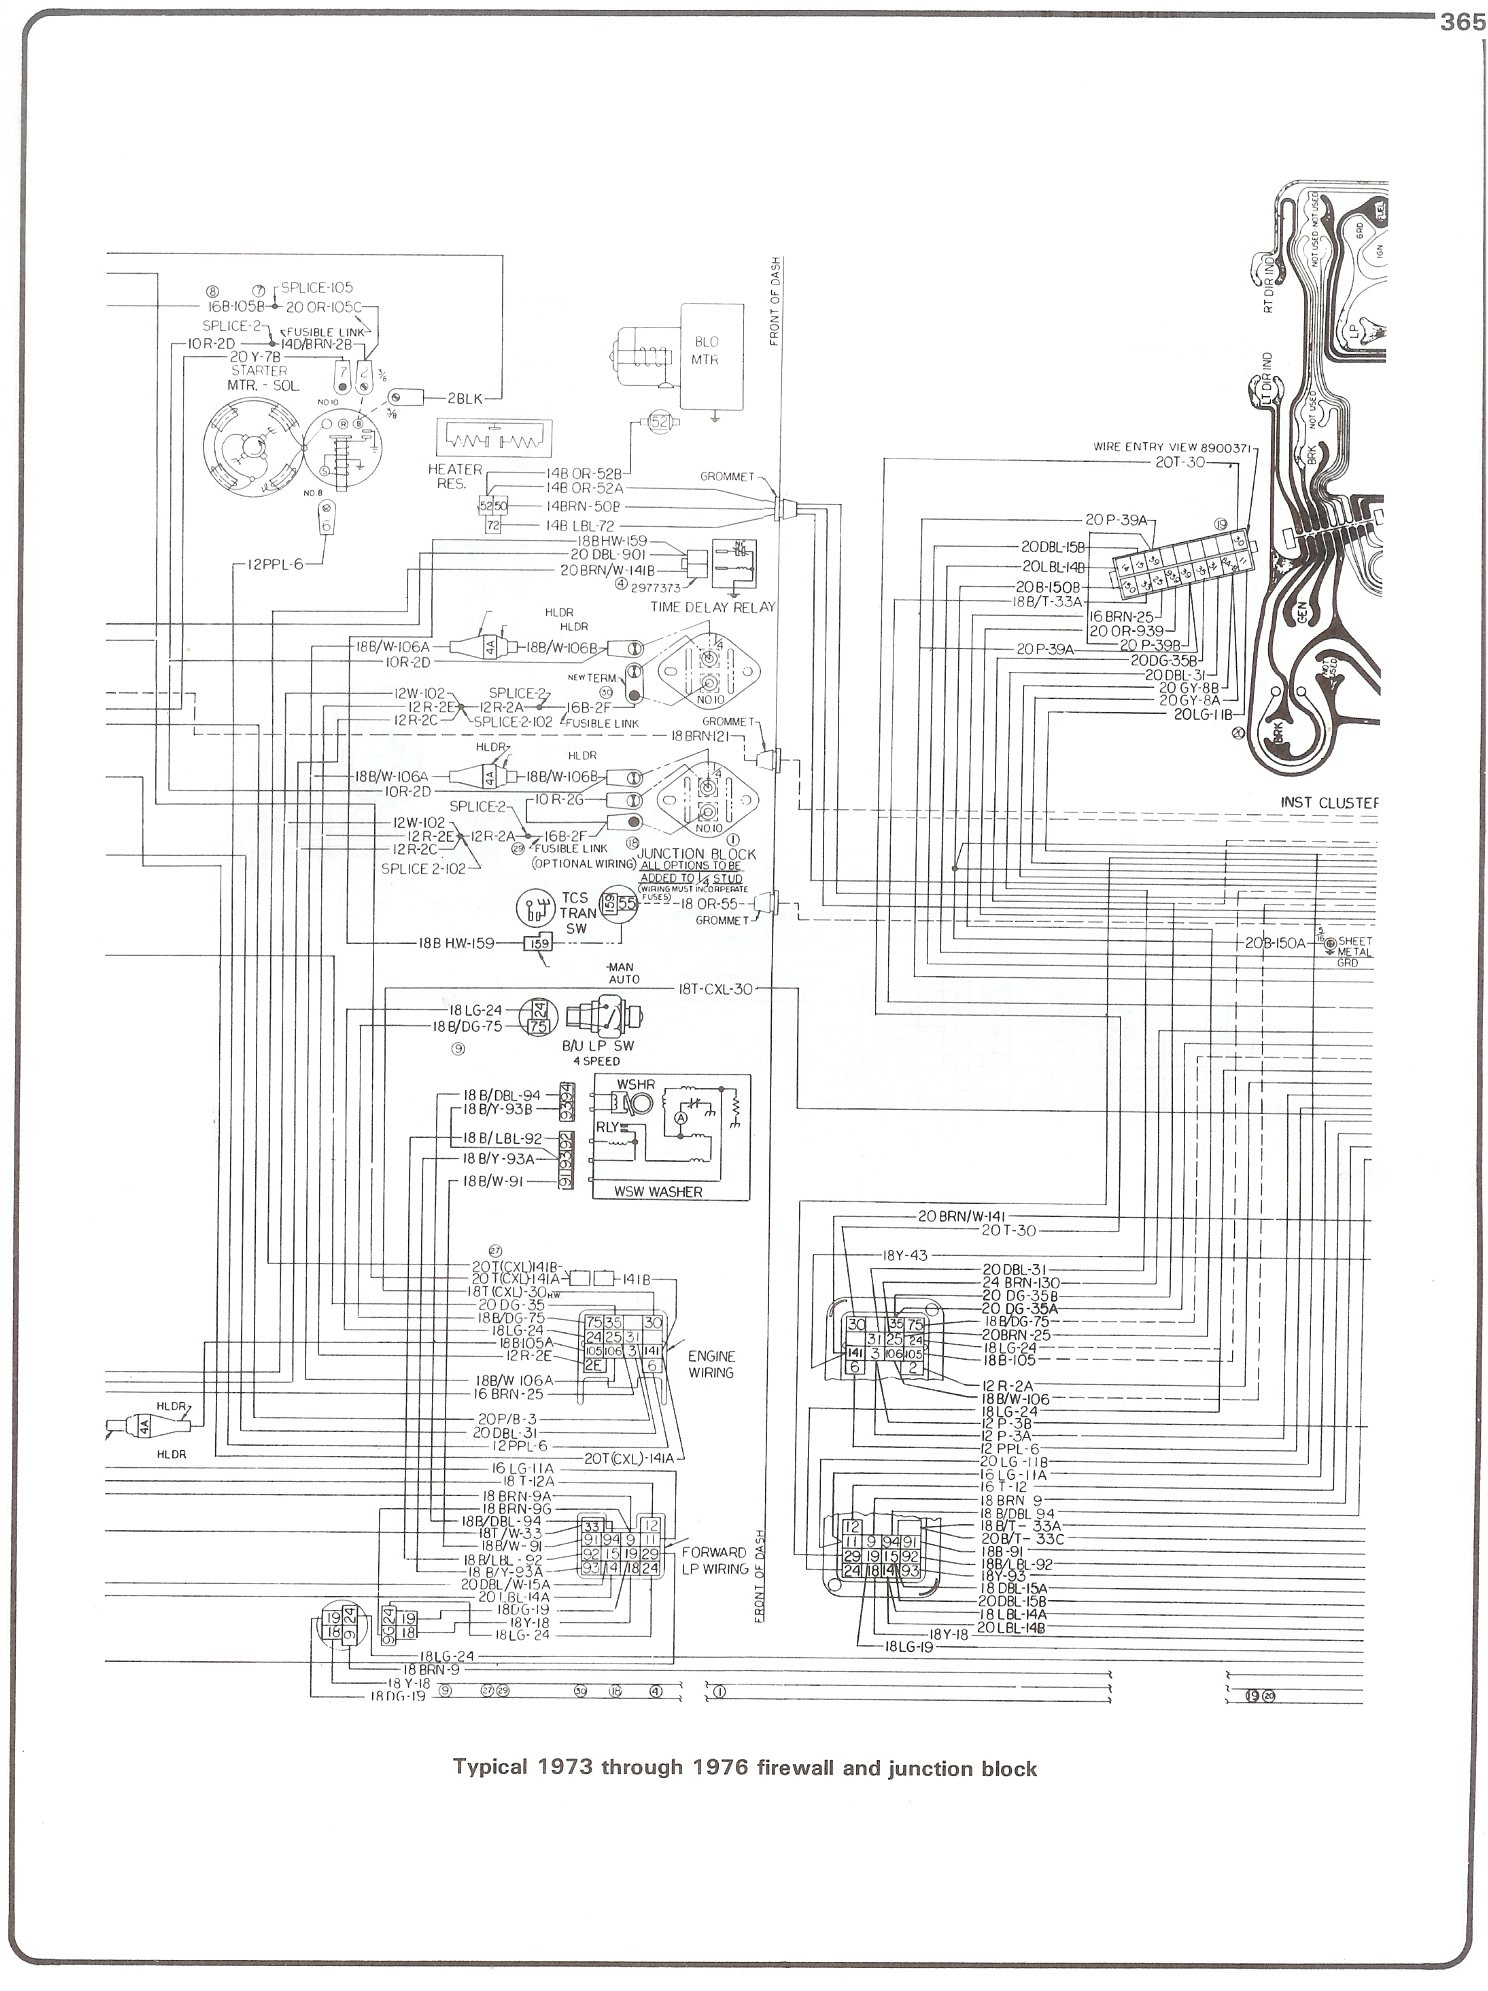 Complete 73 87 Wiring Diagrams Tach Diagram On A Ford F150 In Addition Diesel 76 Firewall Junction